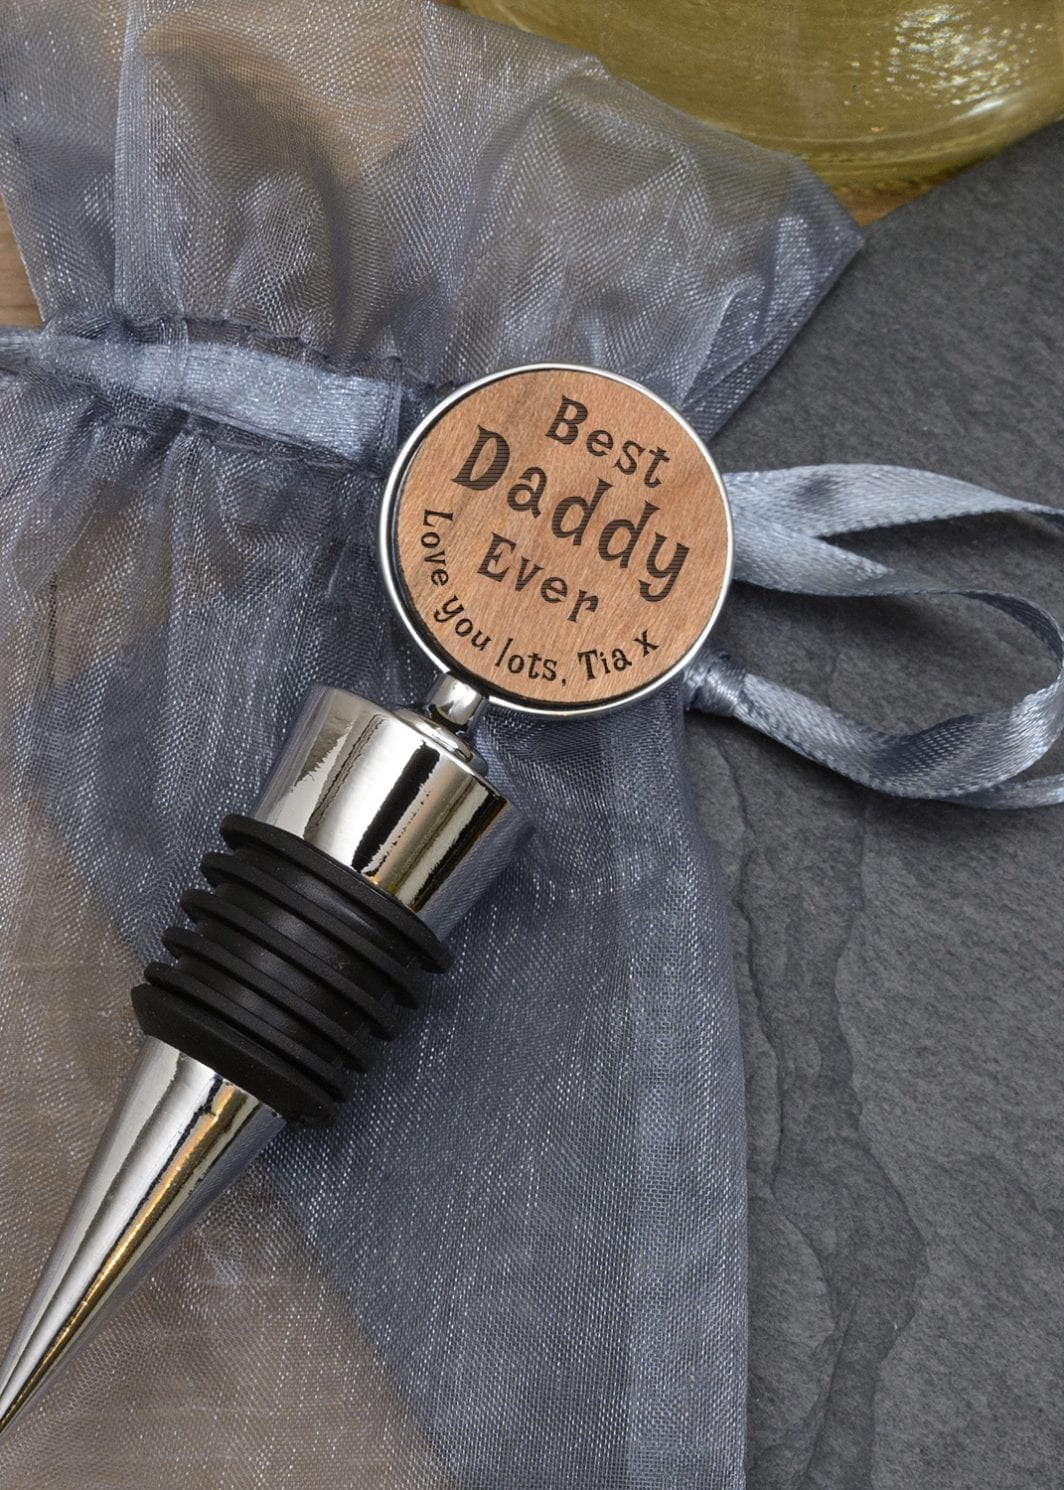 plushbarn personalised gifts plush barn bottle stopper for mummy daddy him her